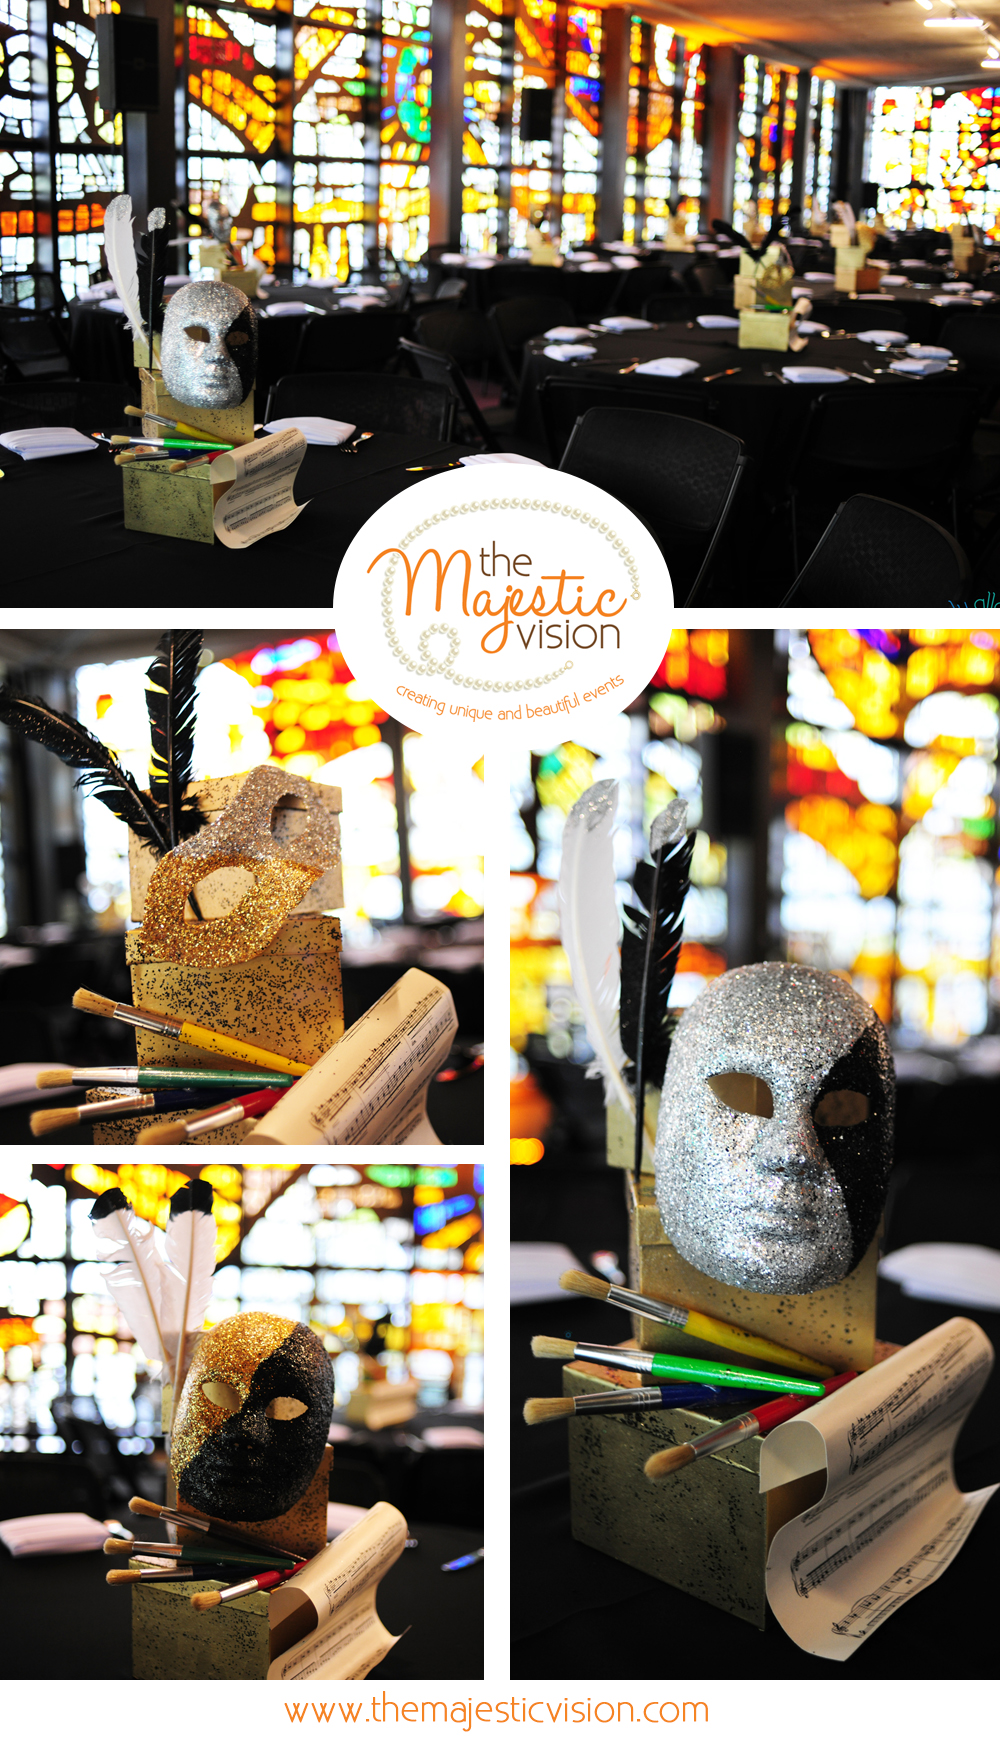 Theater Theme Centerpiece | The Majestic Vision Wedding Planning | YoungArts Foundation in Miami, FL | www.themajesticvision.com | Emily Allongo Photography